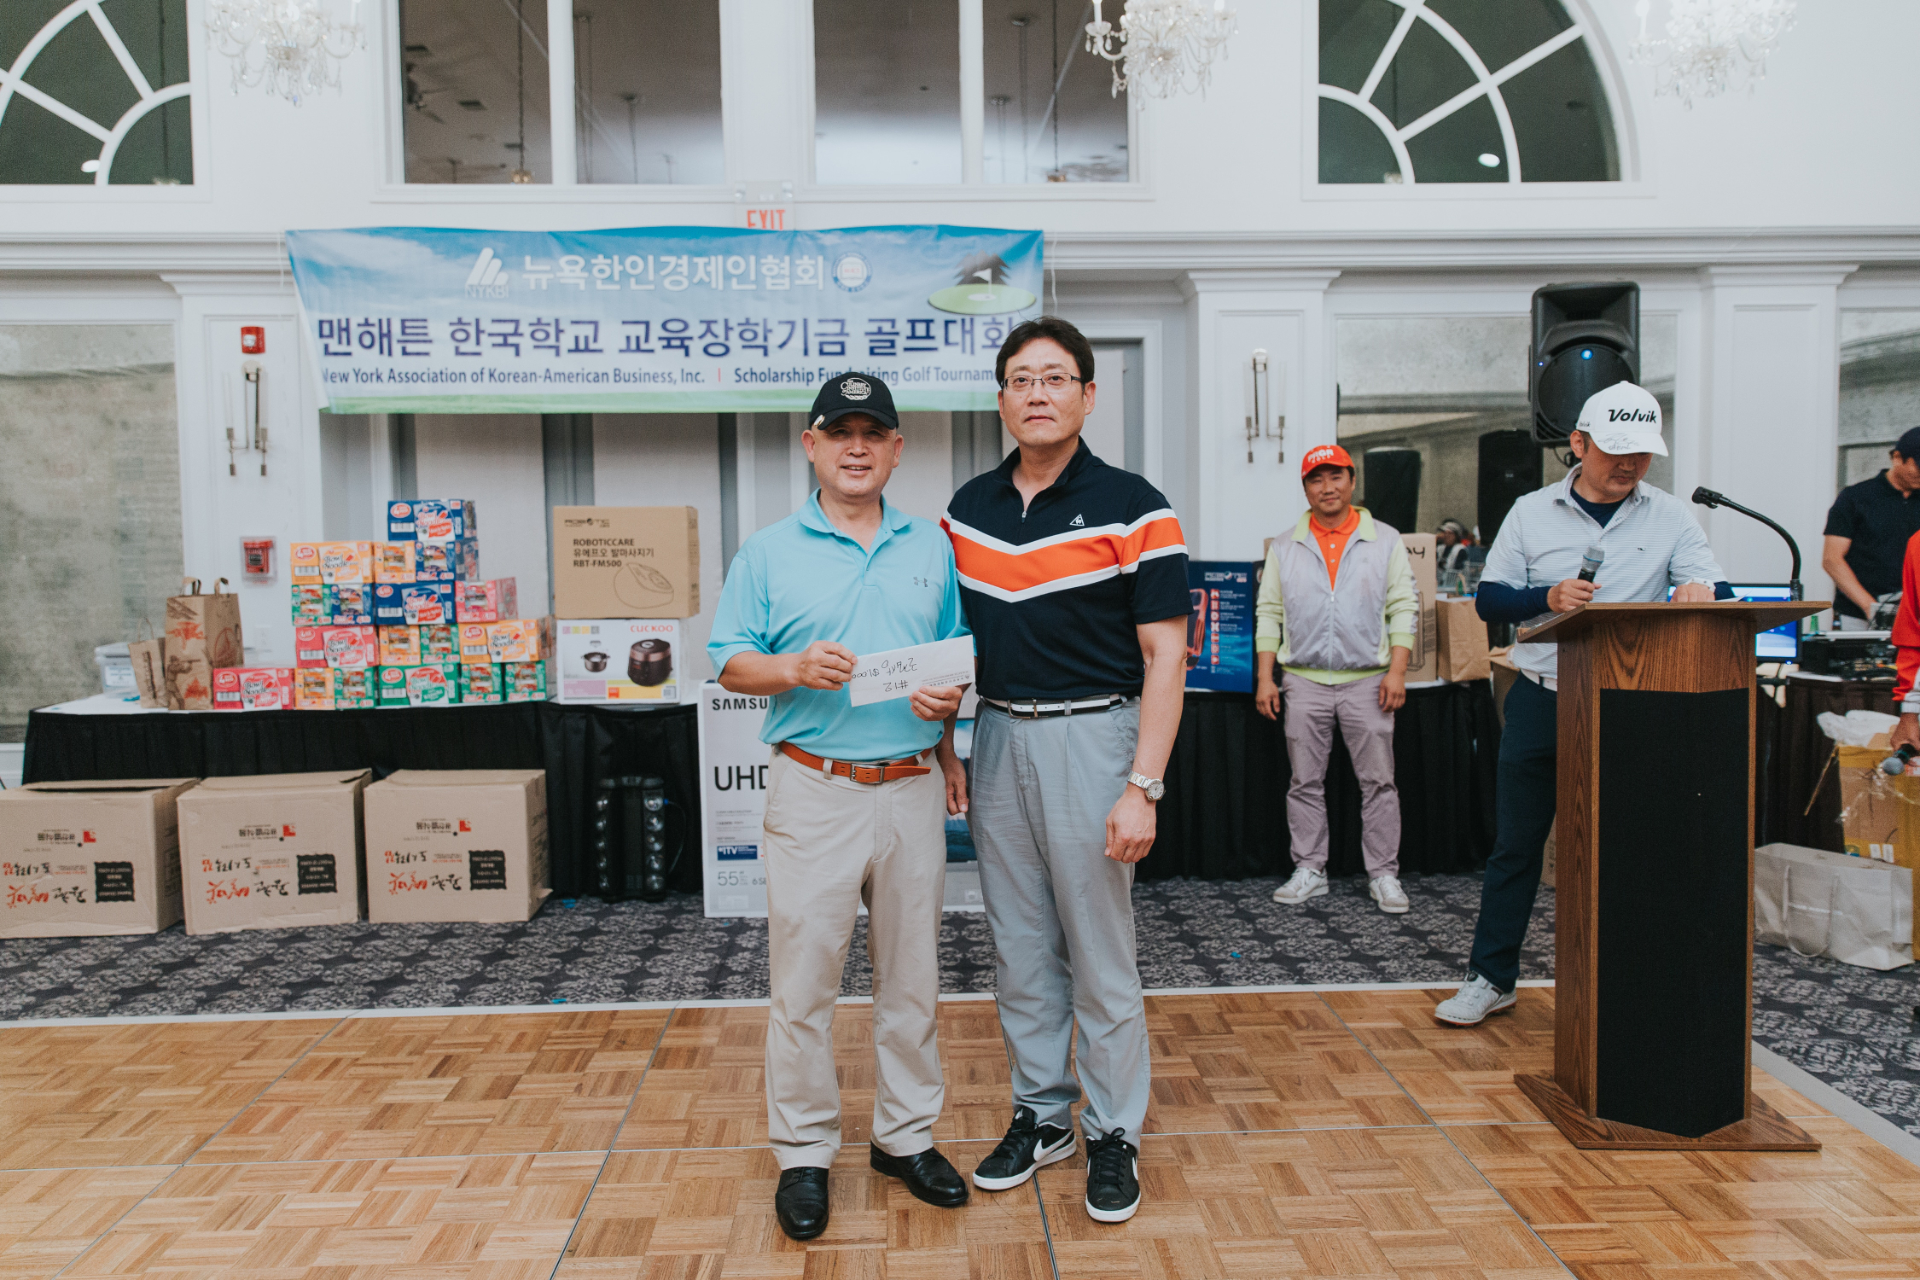 https://nykbi.com/new/wp-content/uploads/2019/07/190619-Scholarship-Fundraising-Golf-Tournament-060.jpg